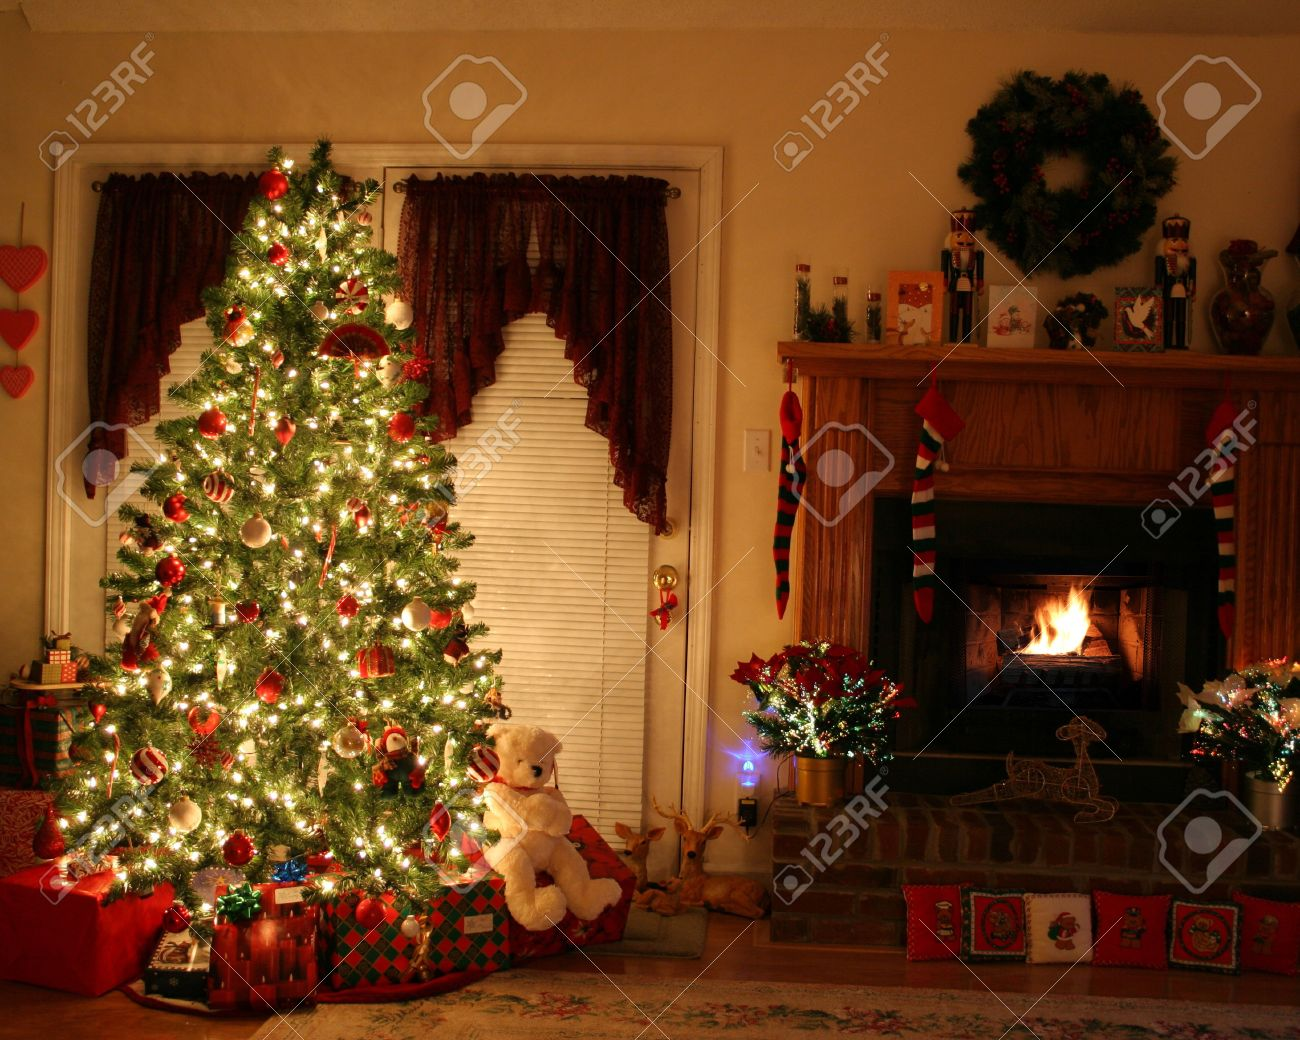 home with lighted christmas tree presents fireplace stockings